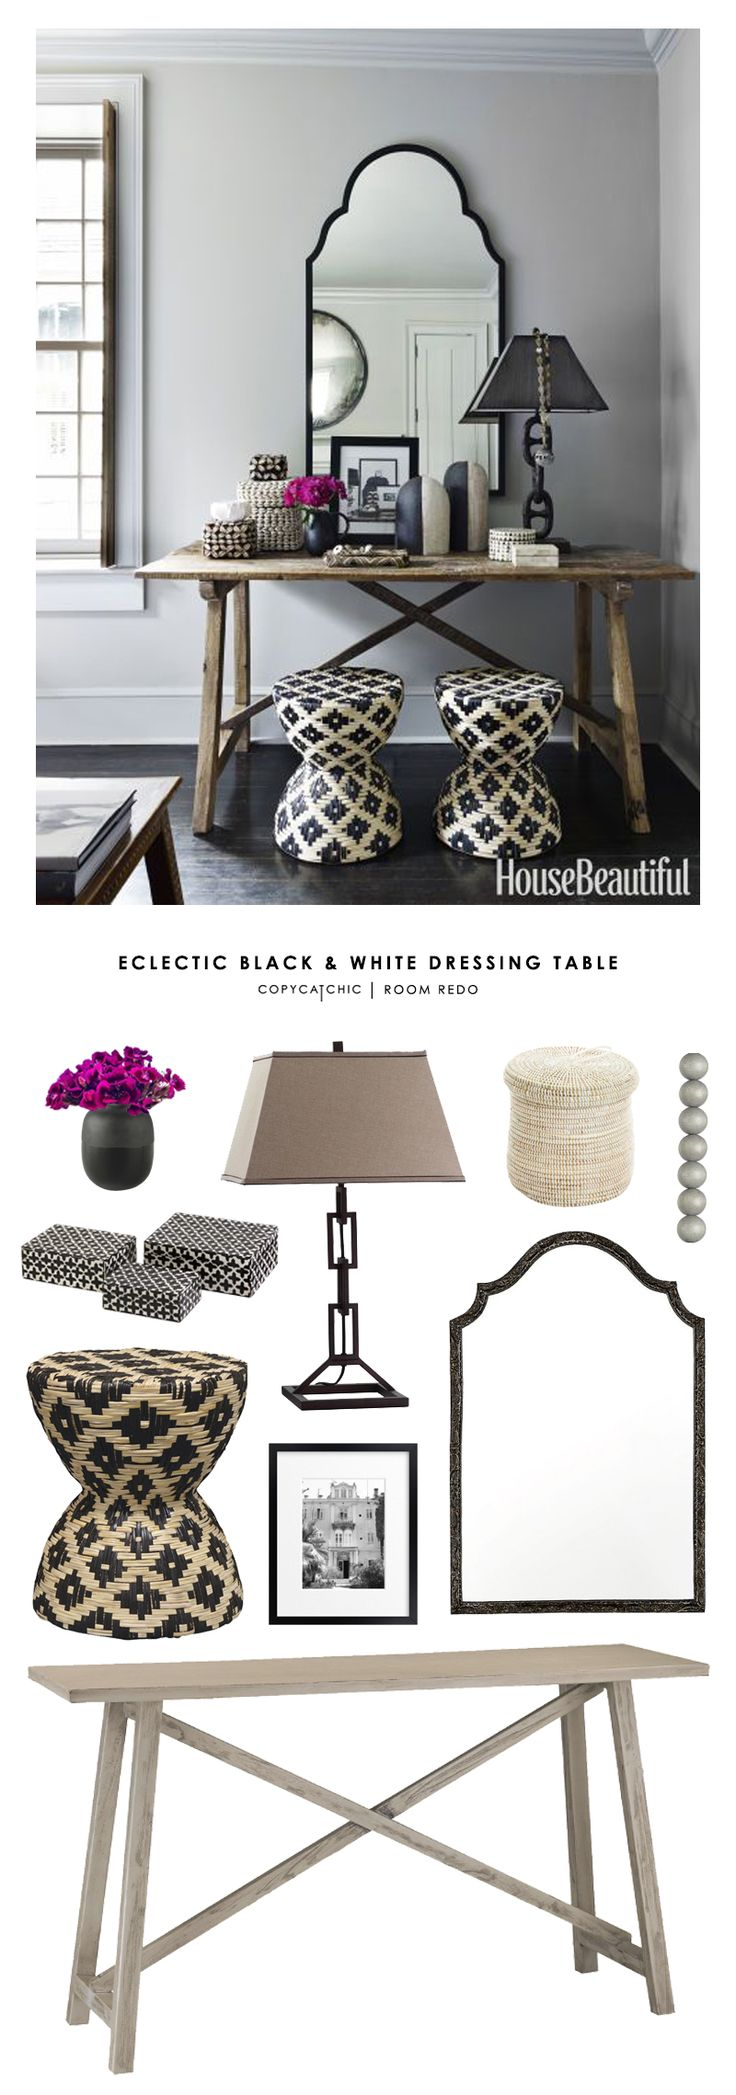 Copy Cat Chic Room Redo | Eclectic Black and White Dressing Table | Copy Cat Chic | Bloglovin'